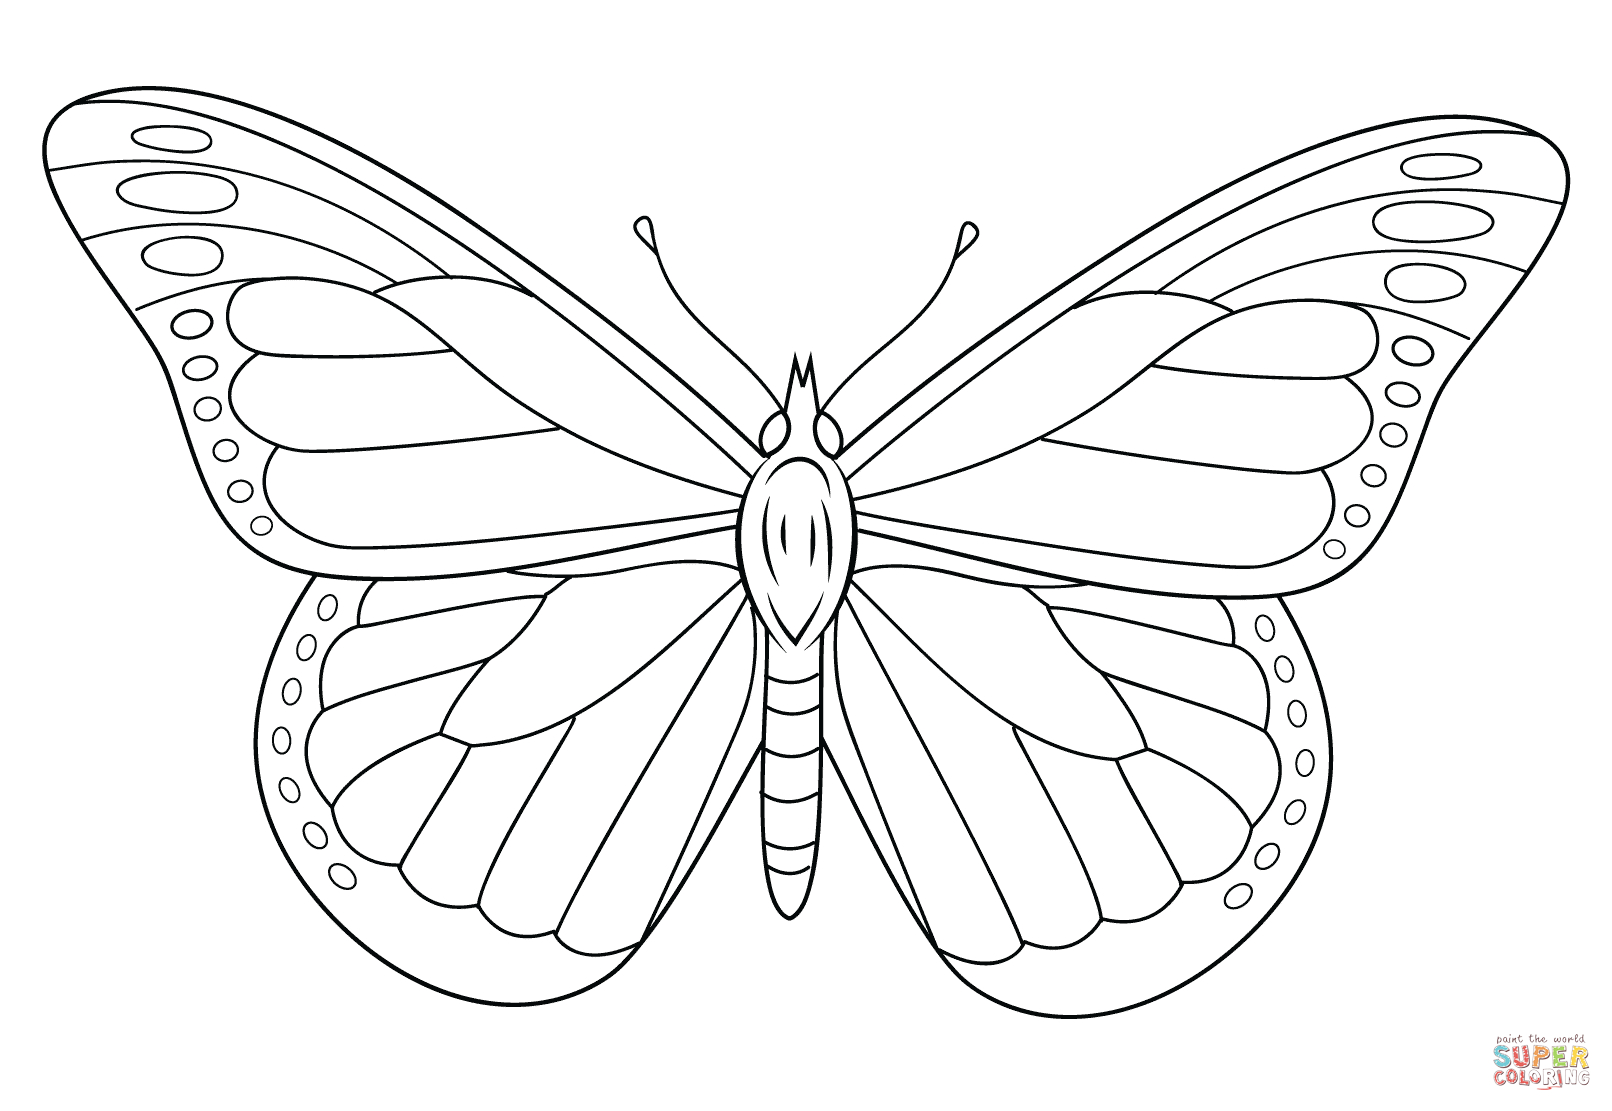 Monarch Butterfly Coloring Page   Free Printable Coloring Pages - Free Printable Butterfly Coloring Pages